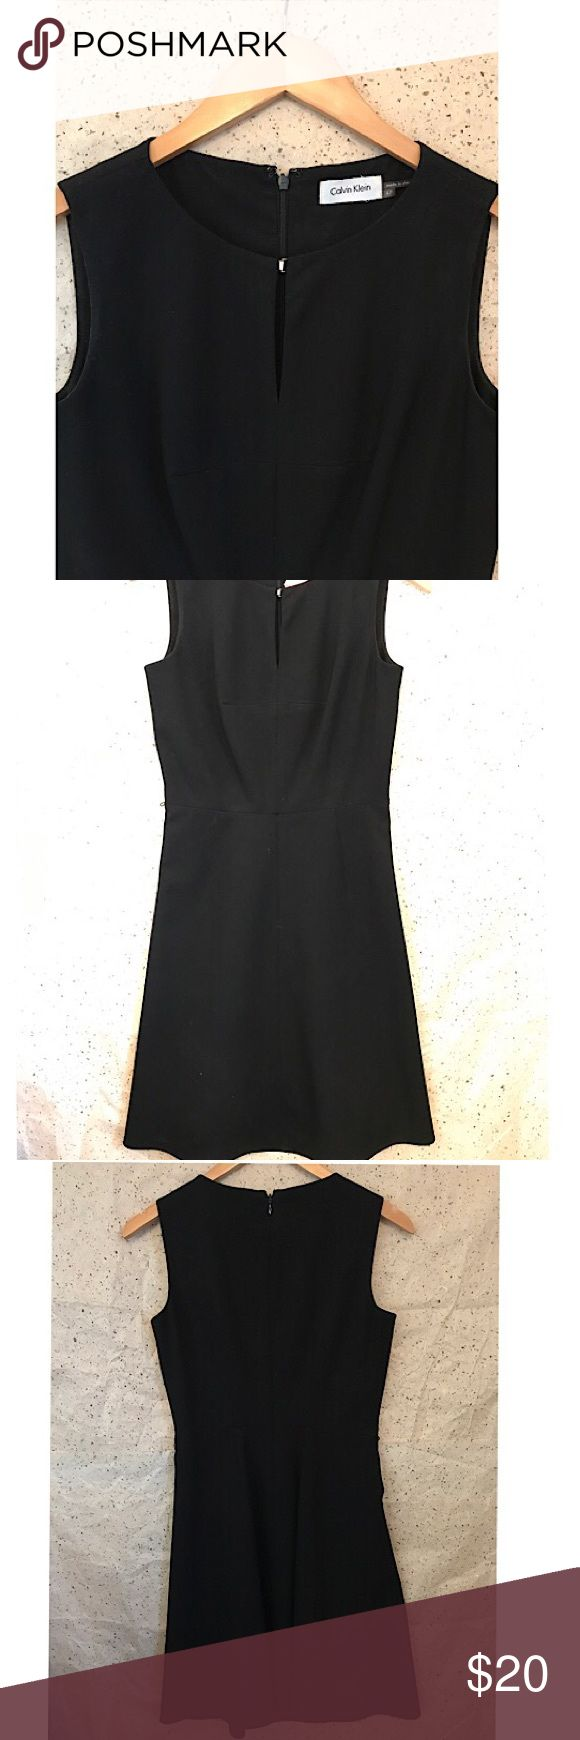 Calvin Klein Black dress In perfect Condition. Size 4 Petite. Black dress perfect for formal or casual wear depending on accessories and style. Perfect for that touch of sophisticated style. In perfect Condition. Front can be clasped closed or open. It's a perfect little black dress. Calvin Klein Dresses